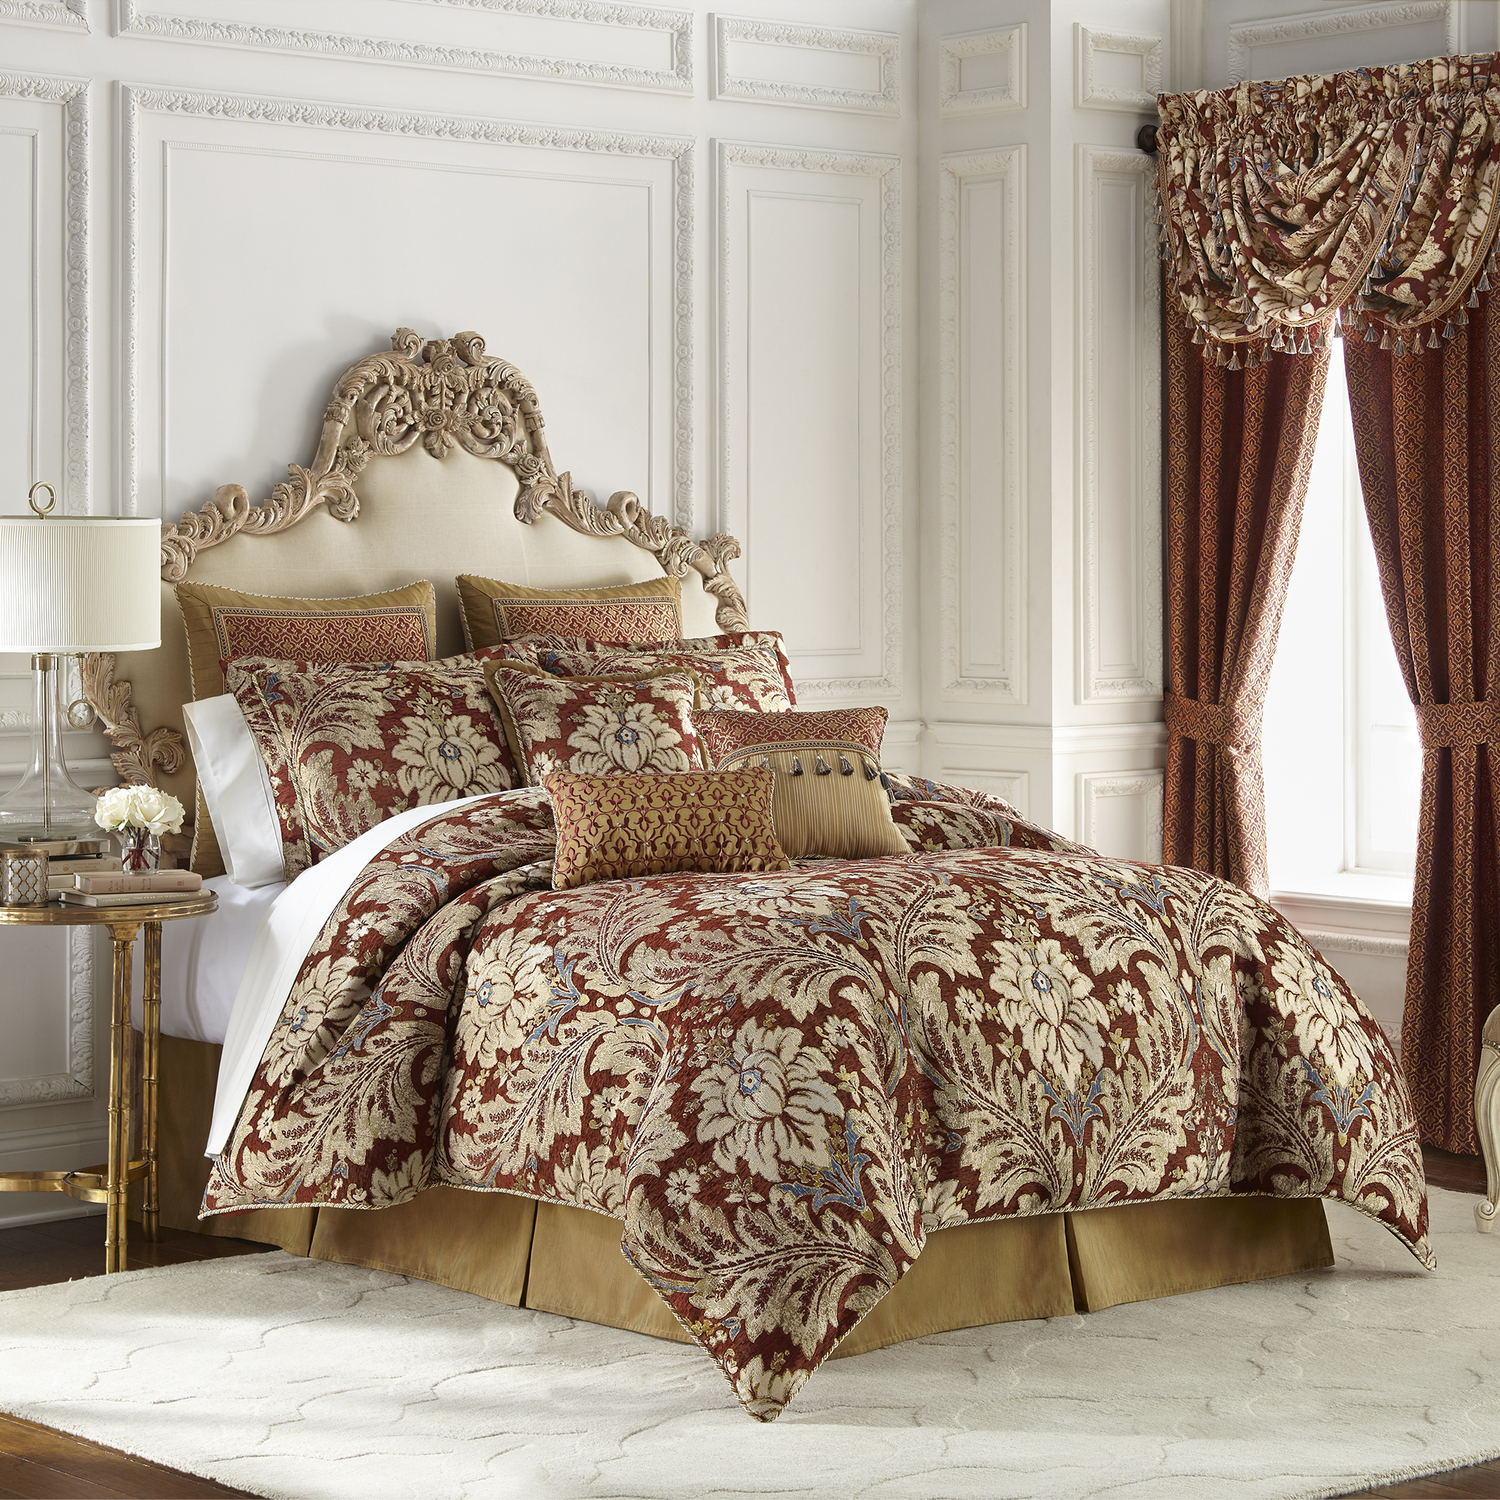 Arden by Croscill Home Fashions